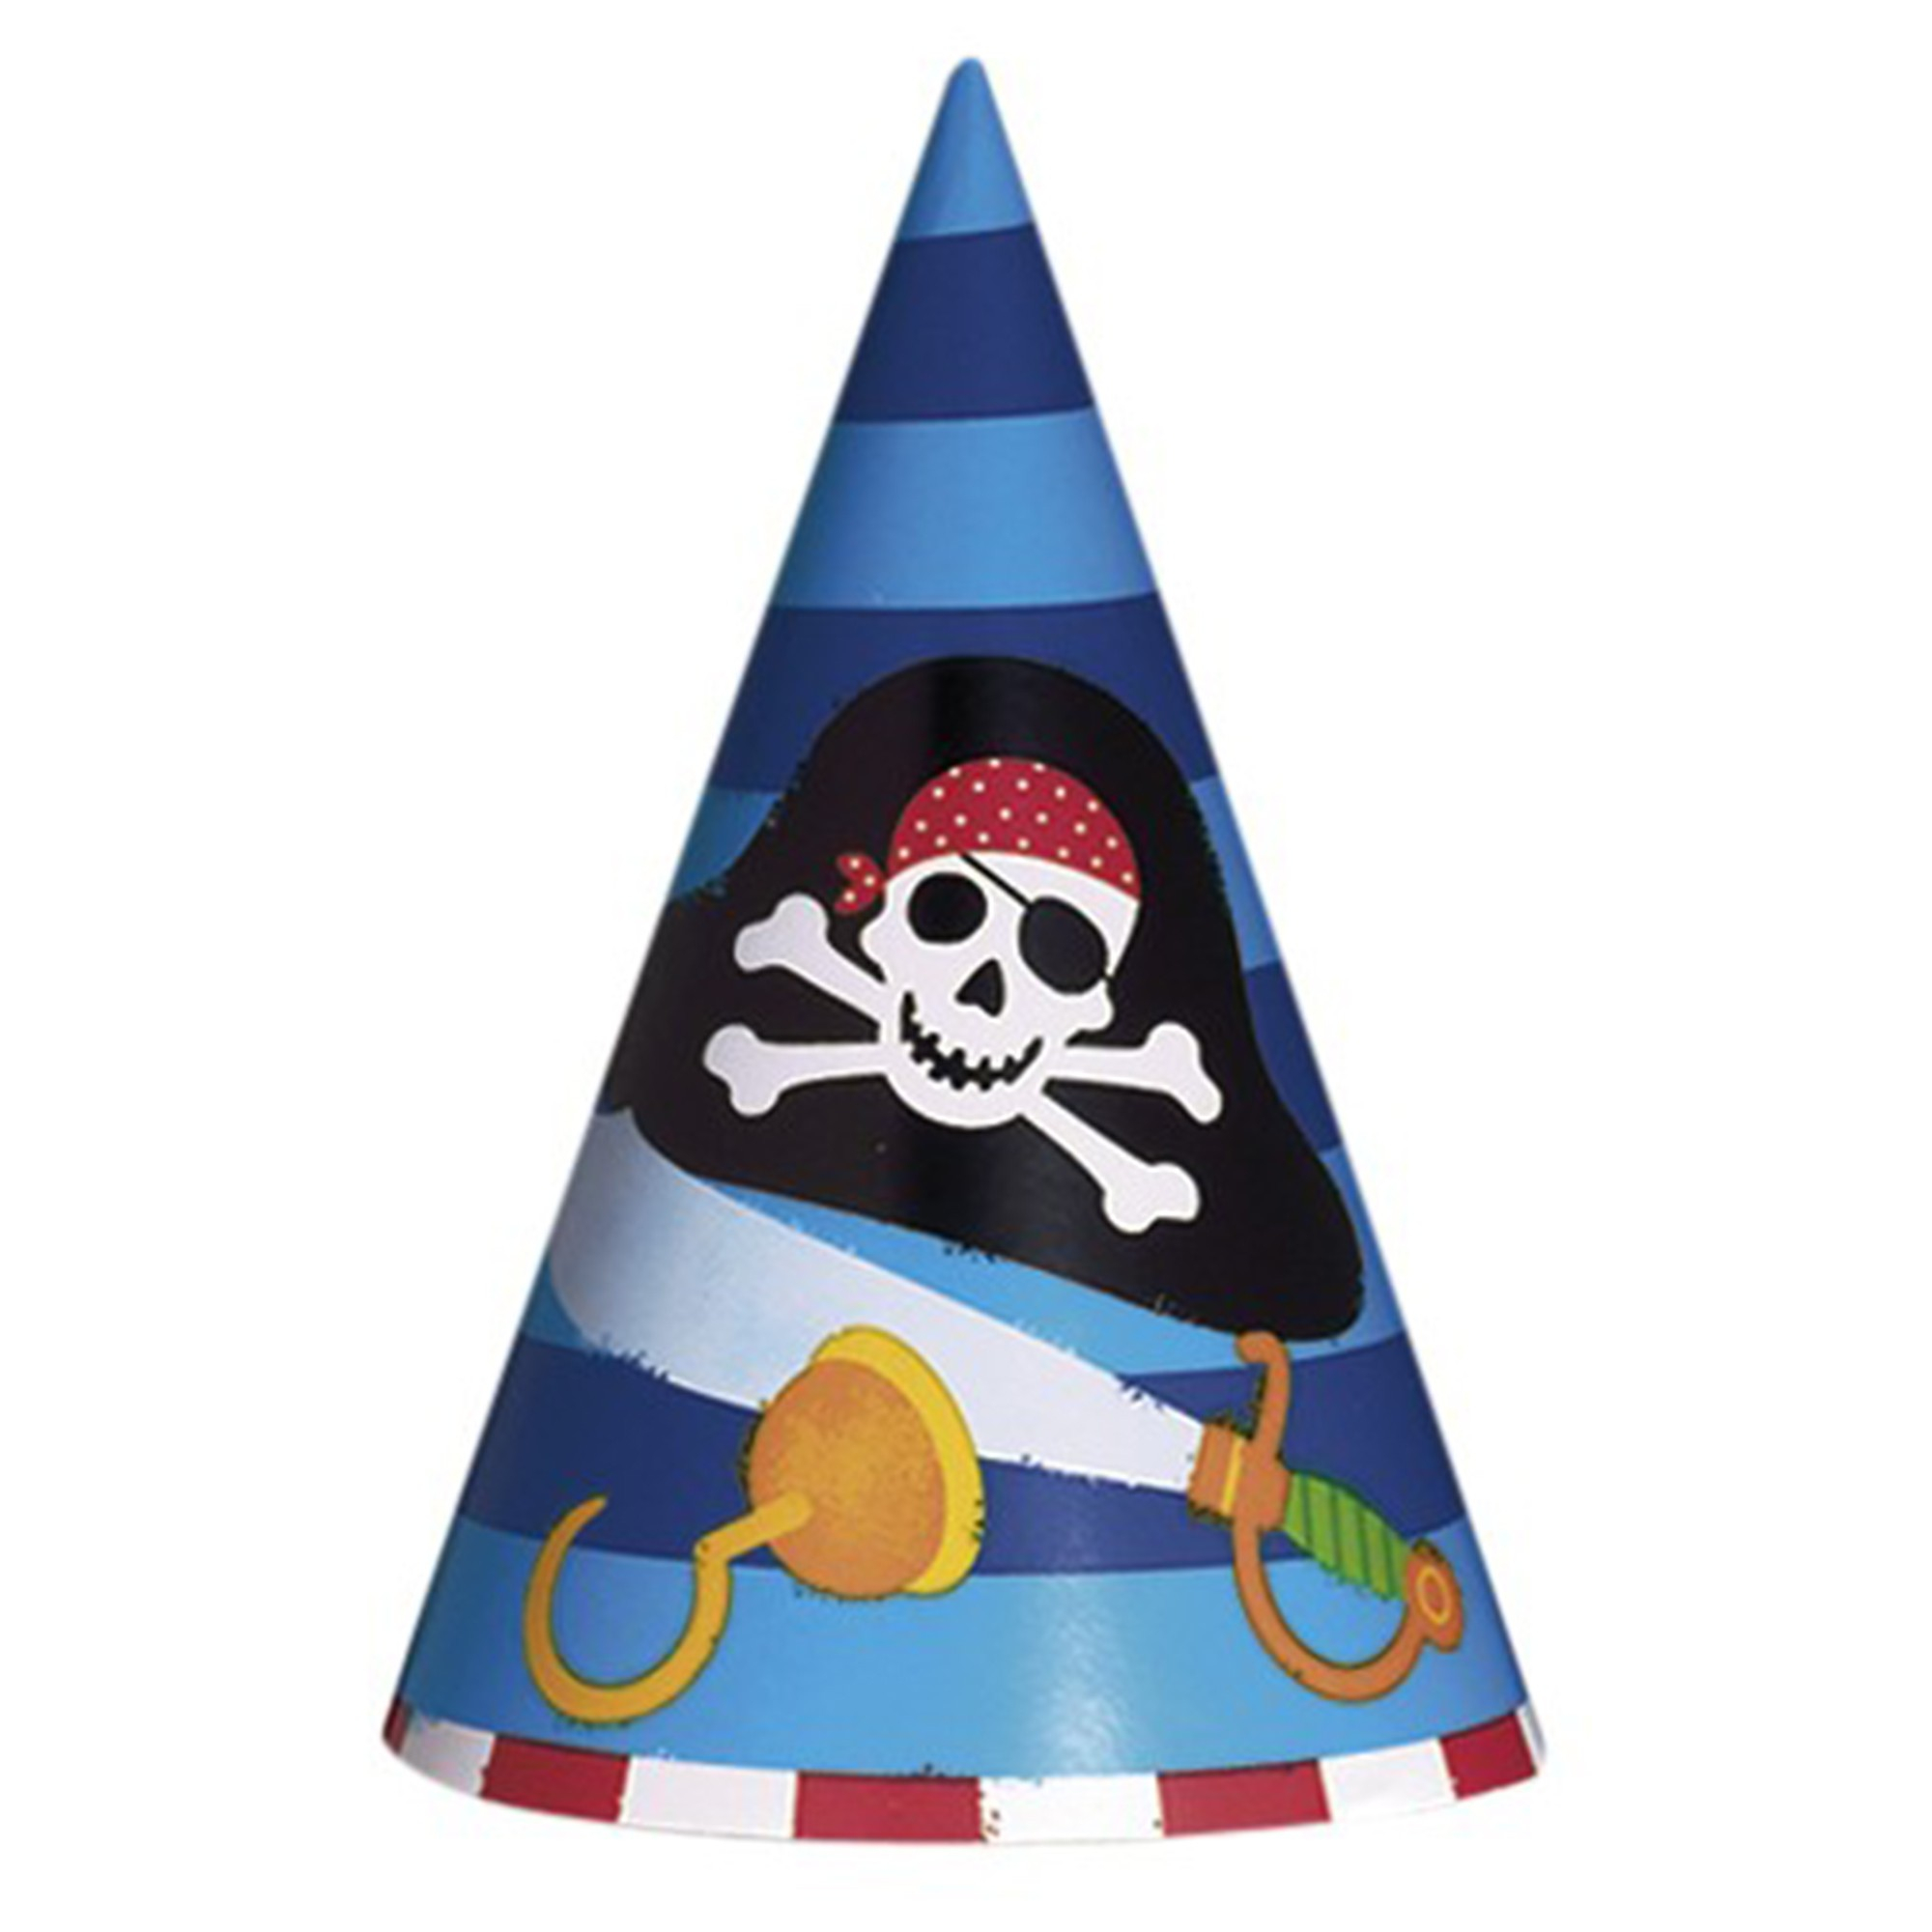 Pirate Party Paper Hats